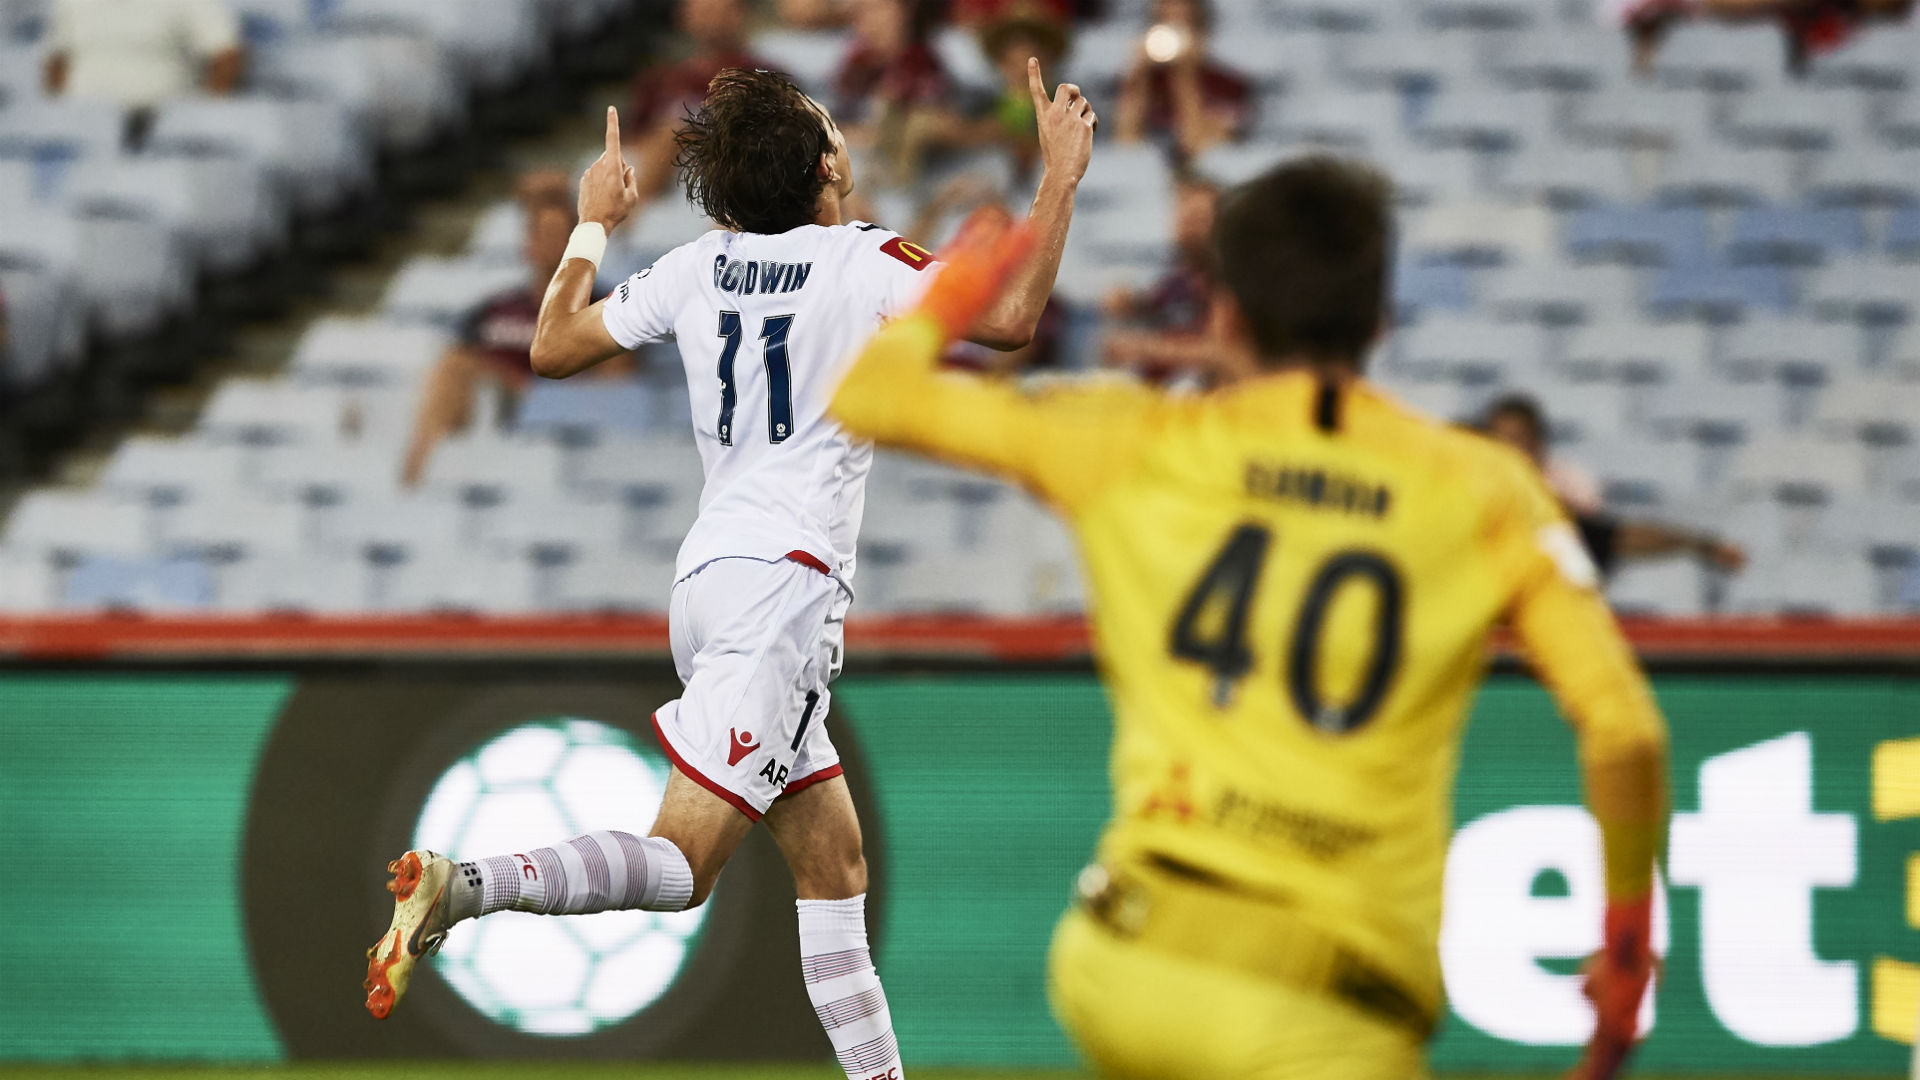 Western Sydney Wanderers 1 Adelaide United 2: Goodwin compounds Wanderers woes